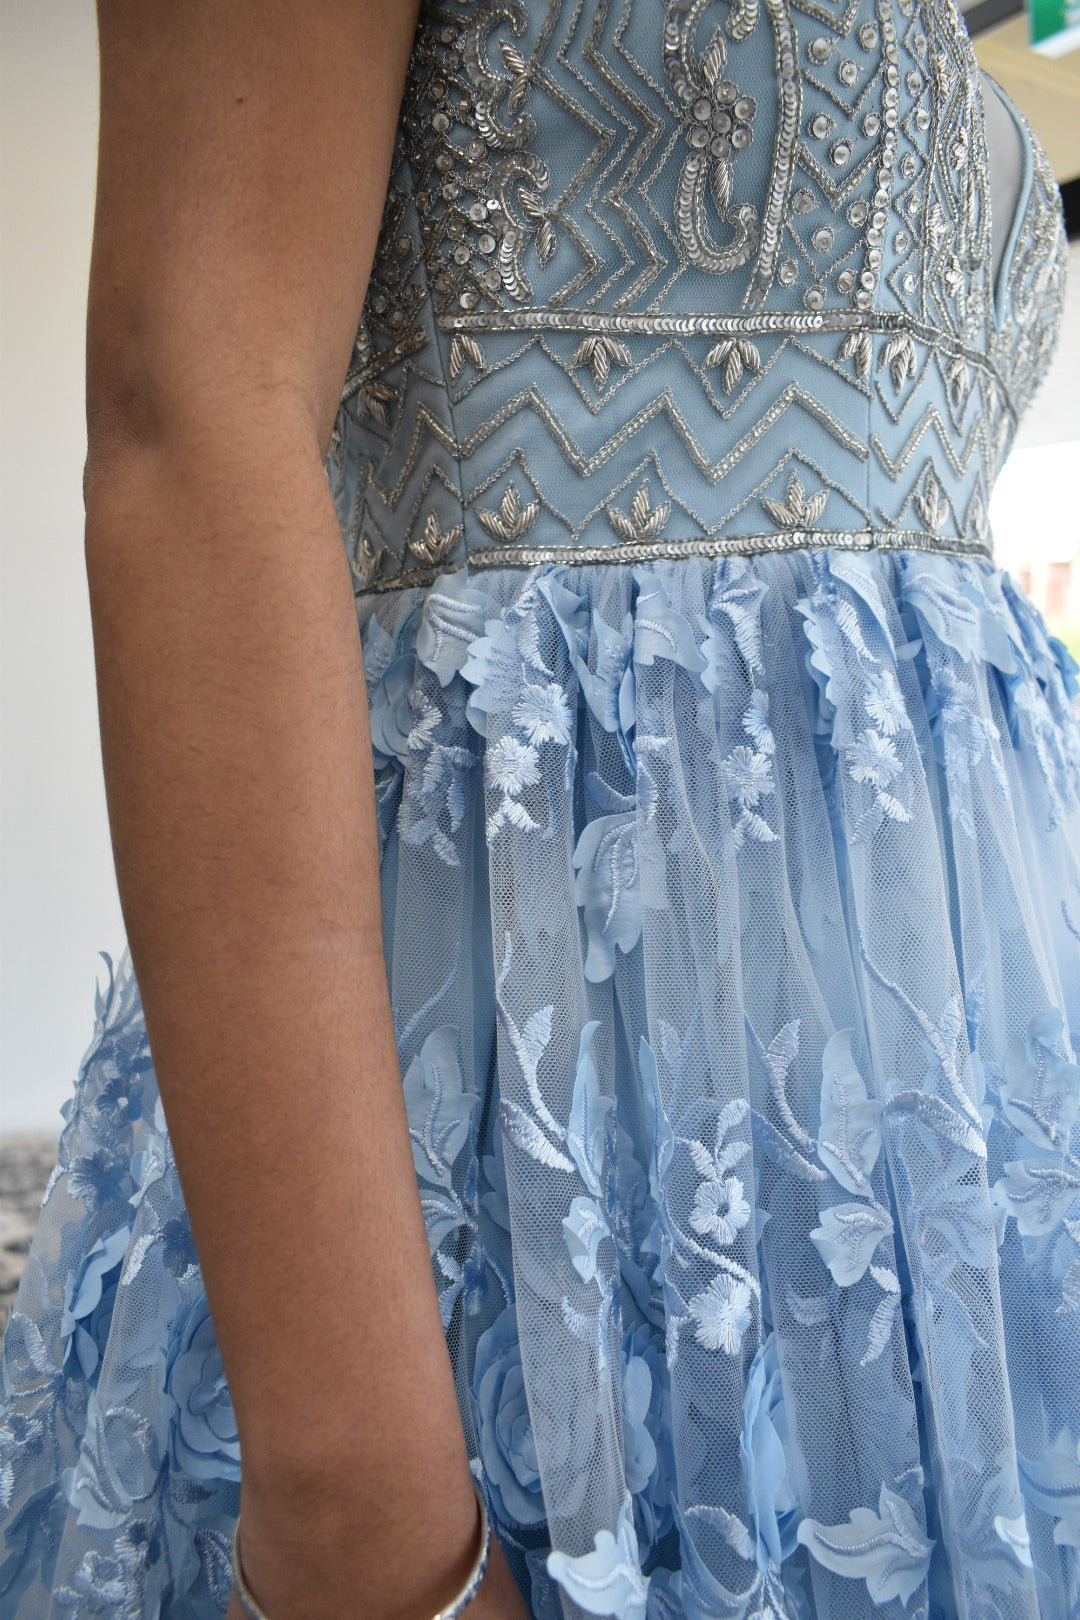 Powder Blue Gown from Panache Haute Couture 1